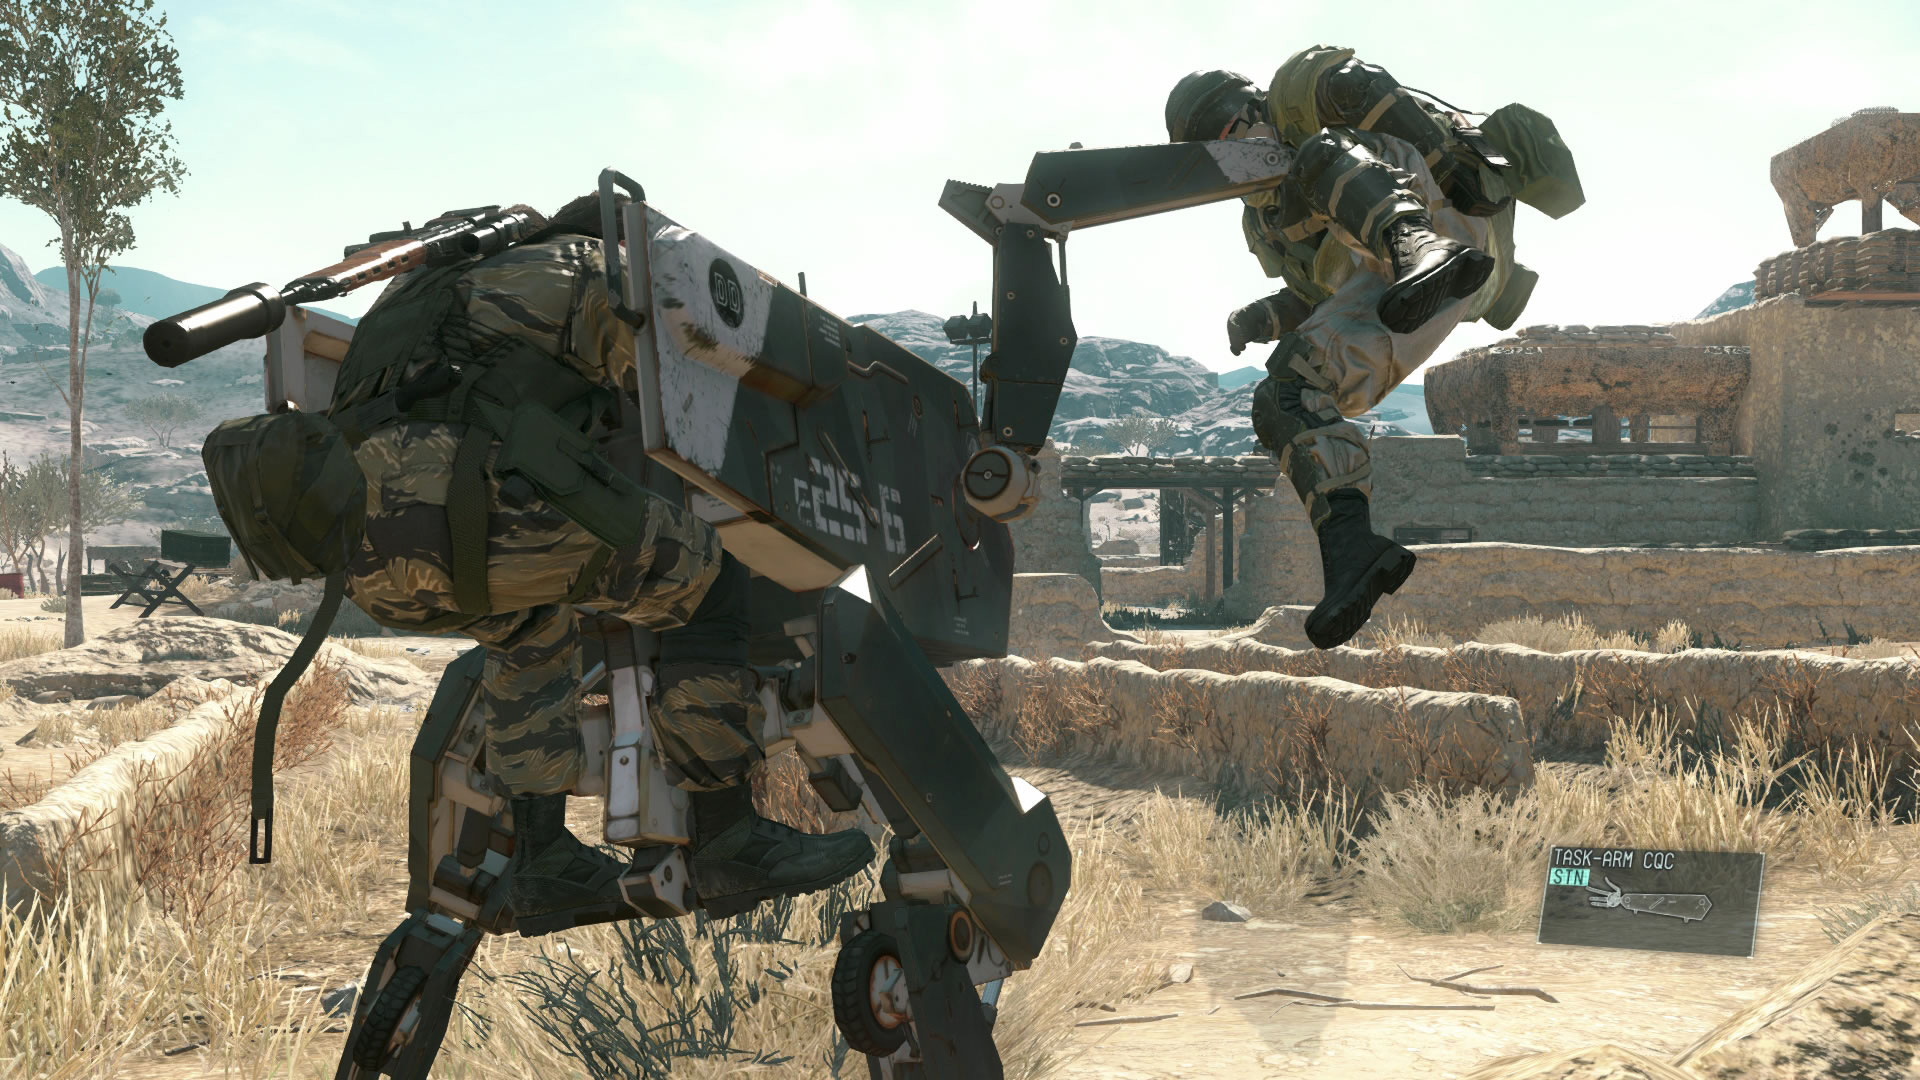 Metal-Gear-Solid-V-The-Phantom-Pain-E3-2015-Screen-Big-Boss-D-Walker-3